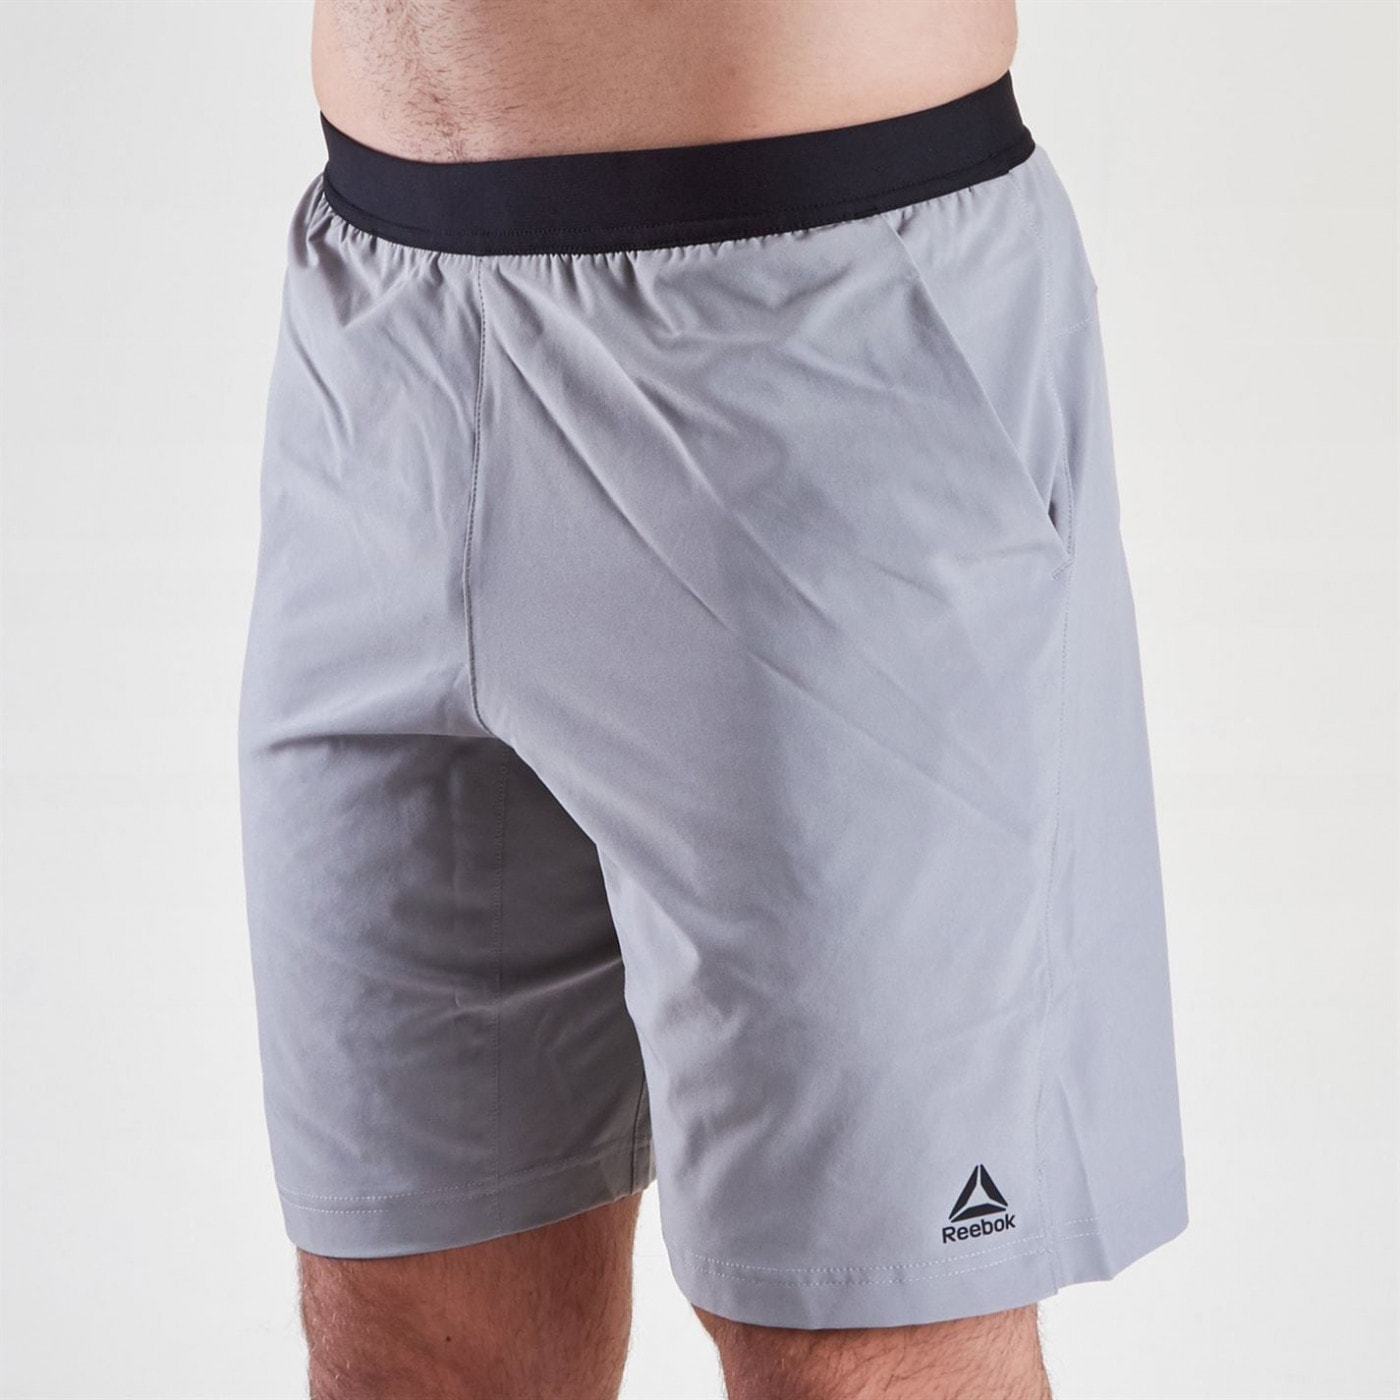 Reebok Speedwick Shorts Mens